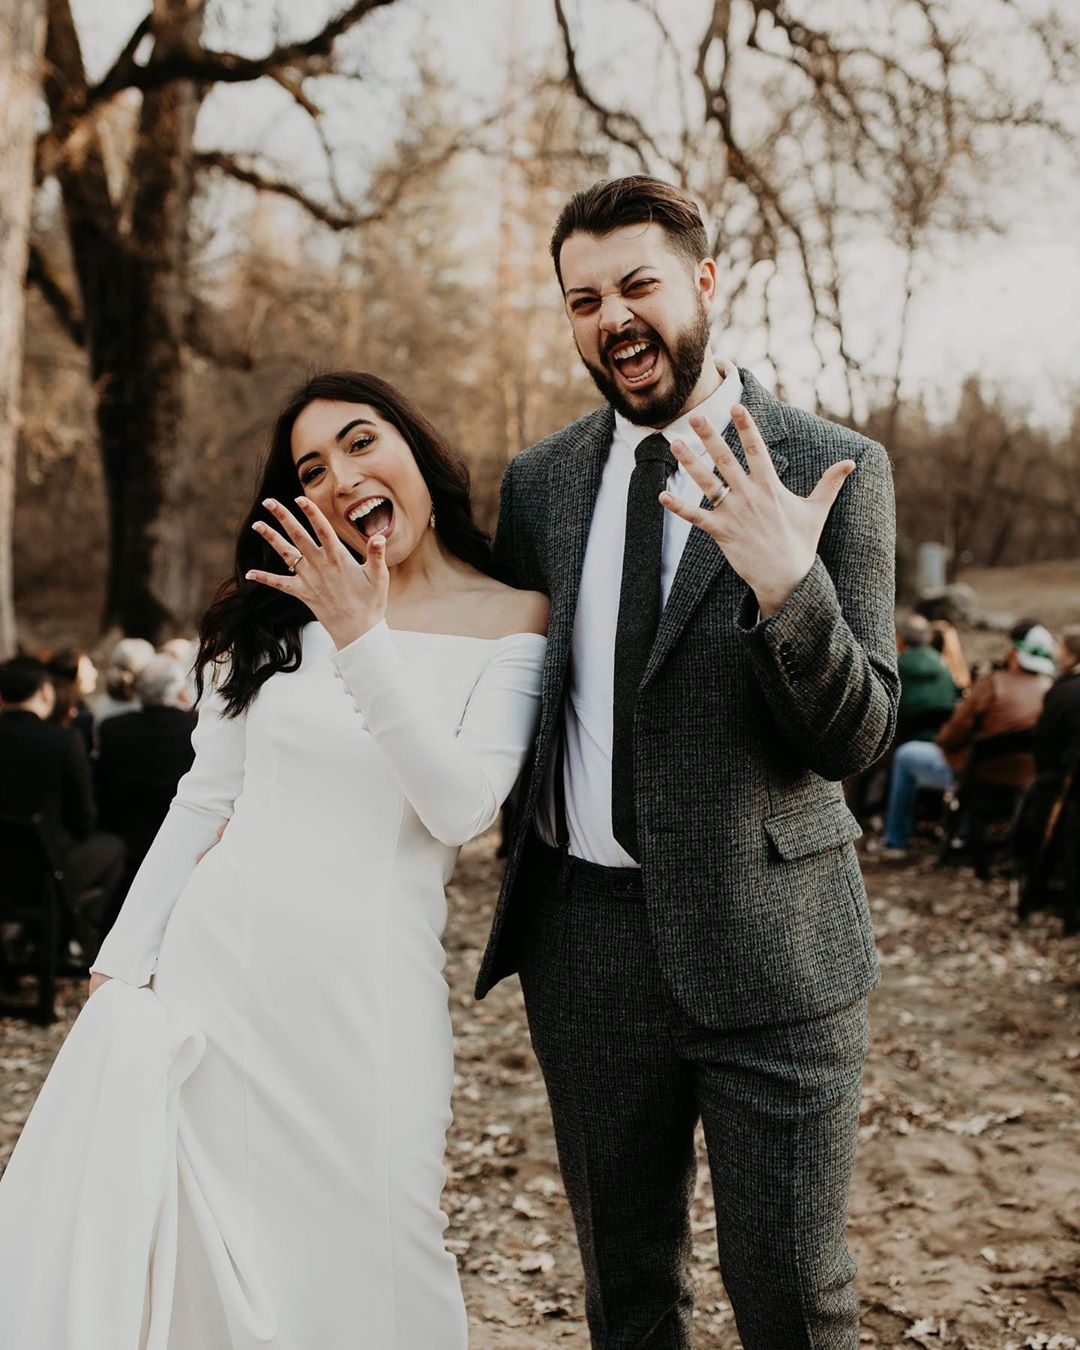 Bride and Groom holding wedding bands ups